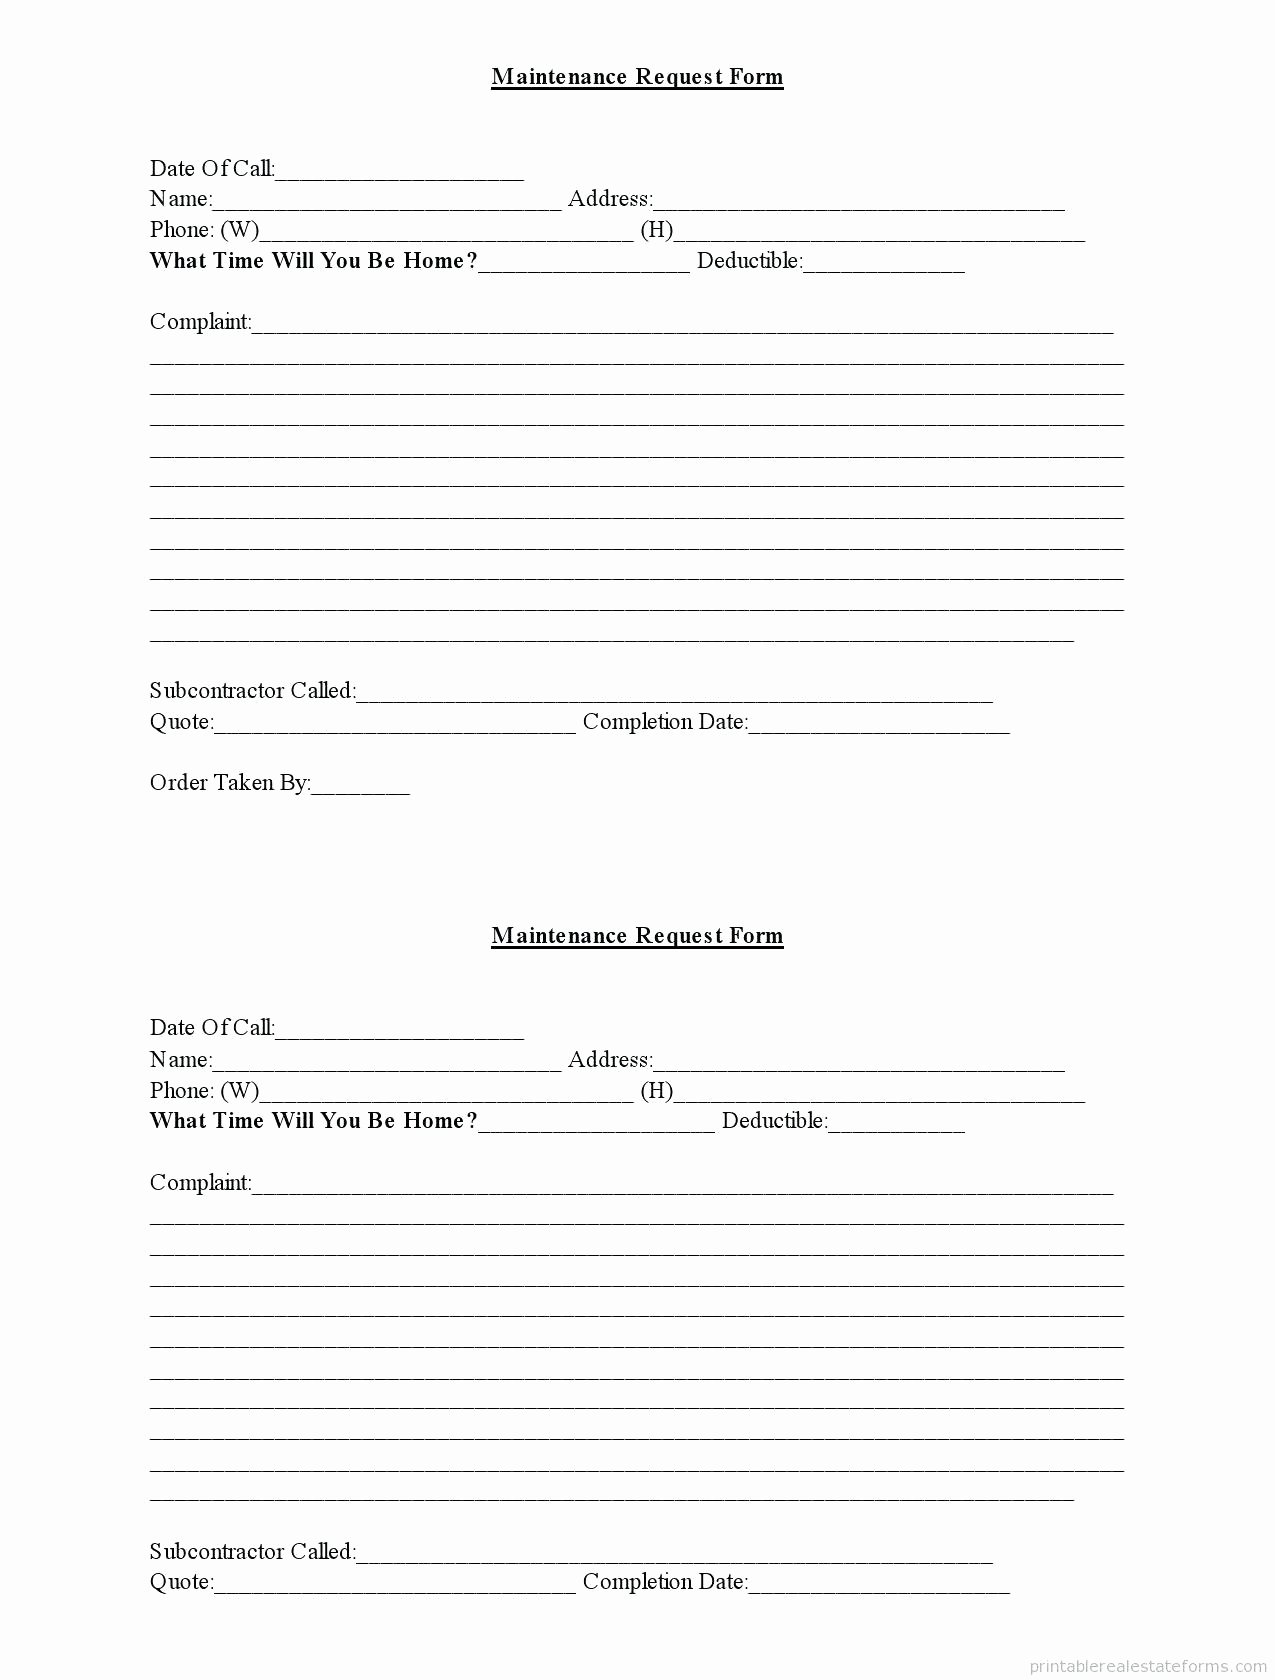 Apartment Work order Template Best Of Apartment Maintenance Work order Template – Cool Green Jobs